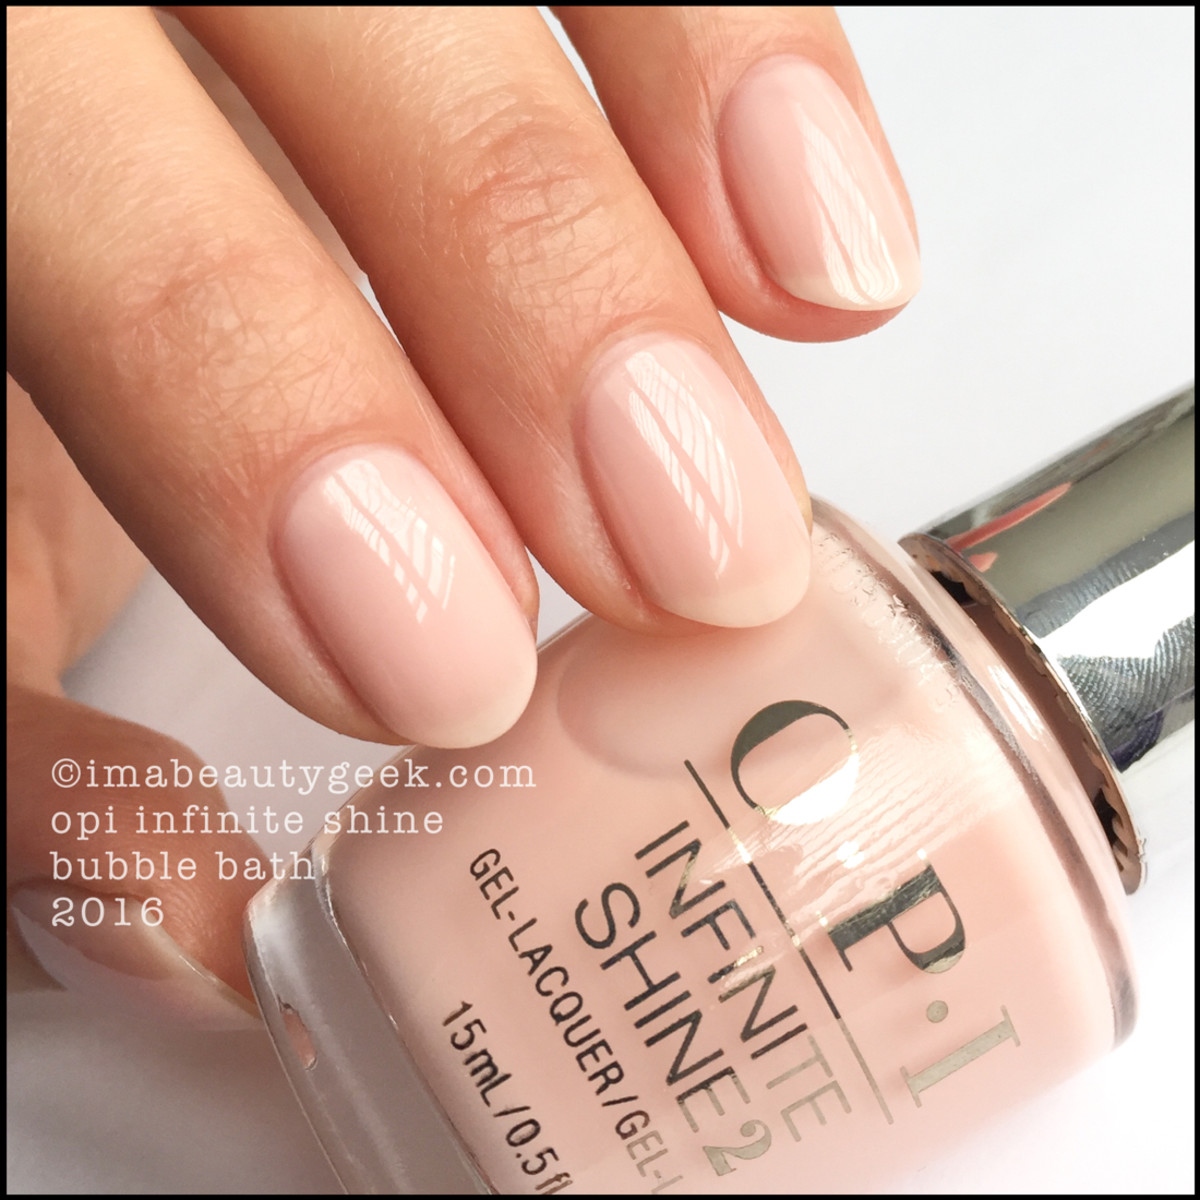 OPI Infinite Shine Bubble Bath_OPI Iconic Collection 2016